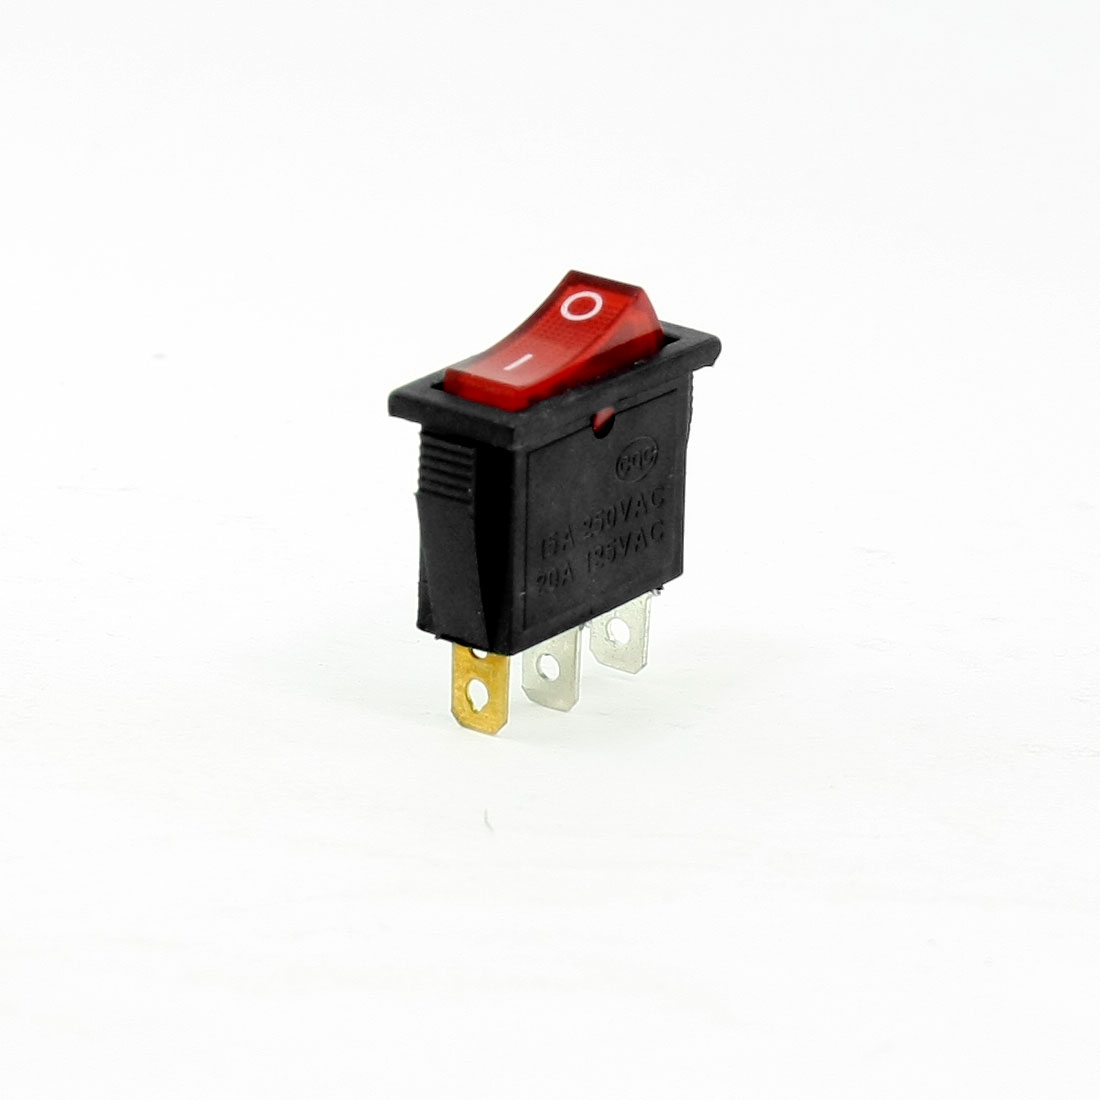 AC 250V/16A 125V/20A 3 Pins SPST I/O Red Light Snap in Boat Rocker Switch